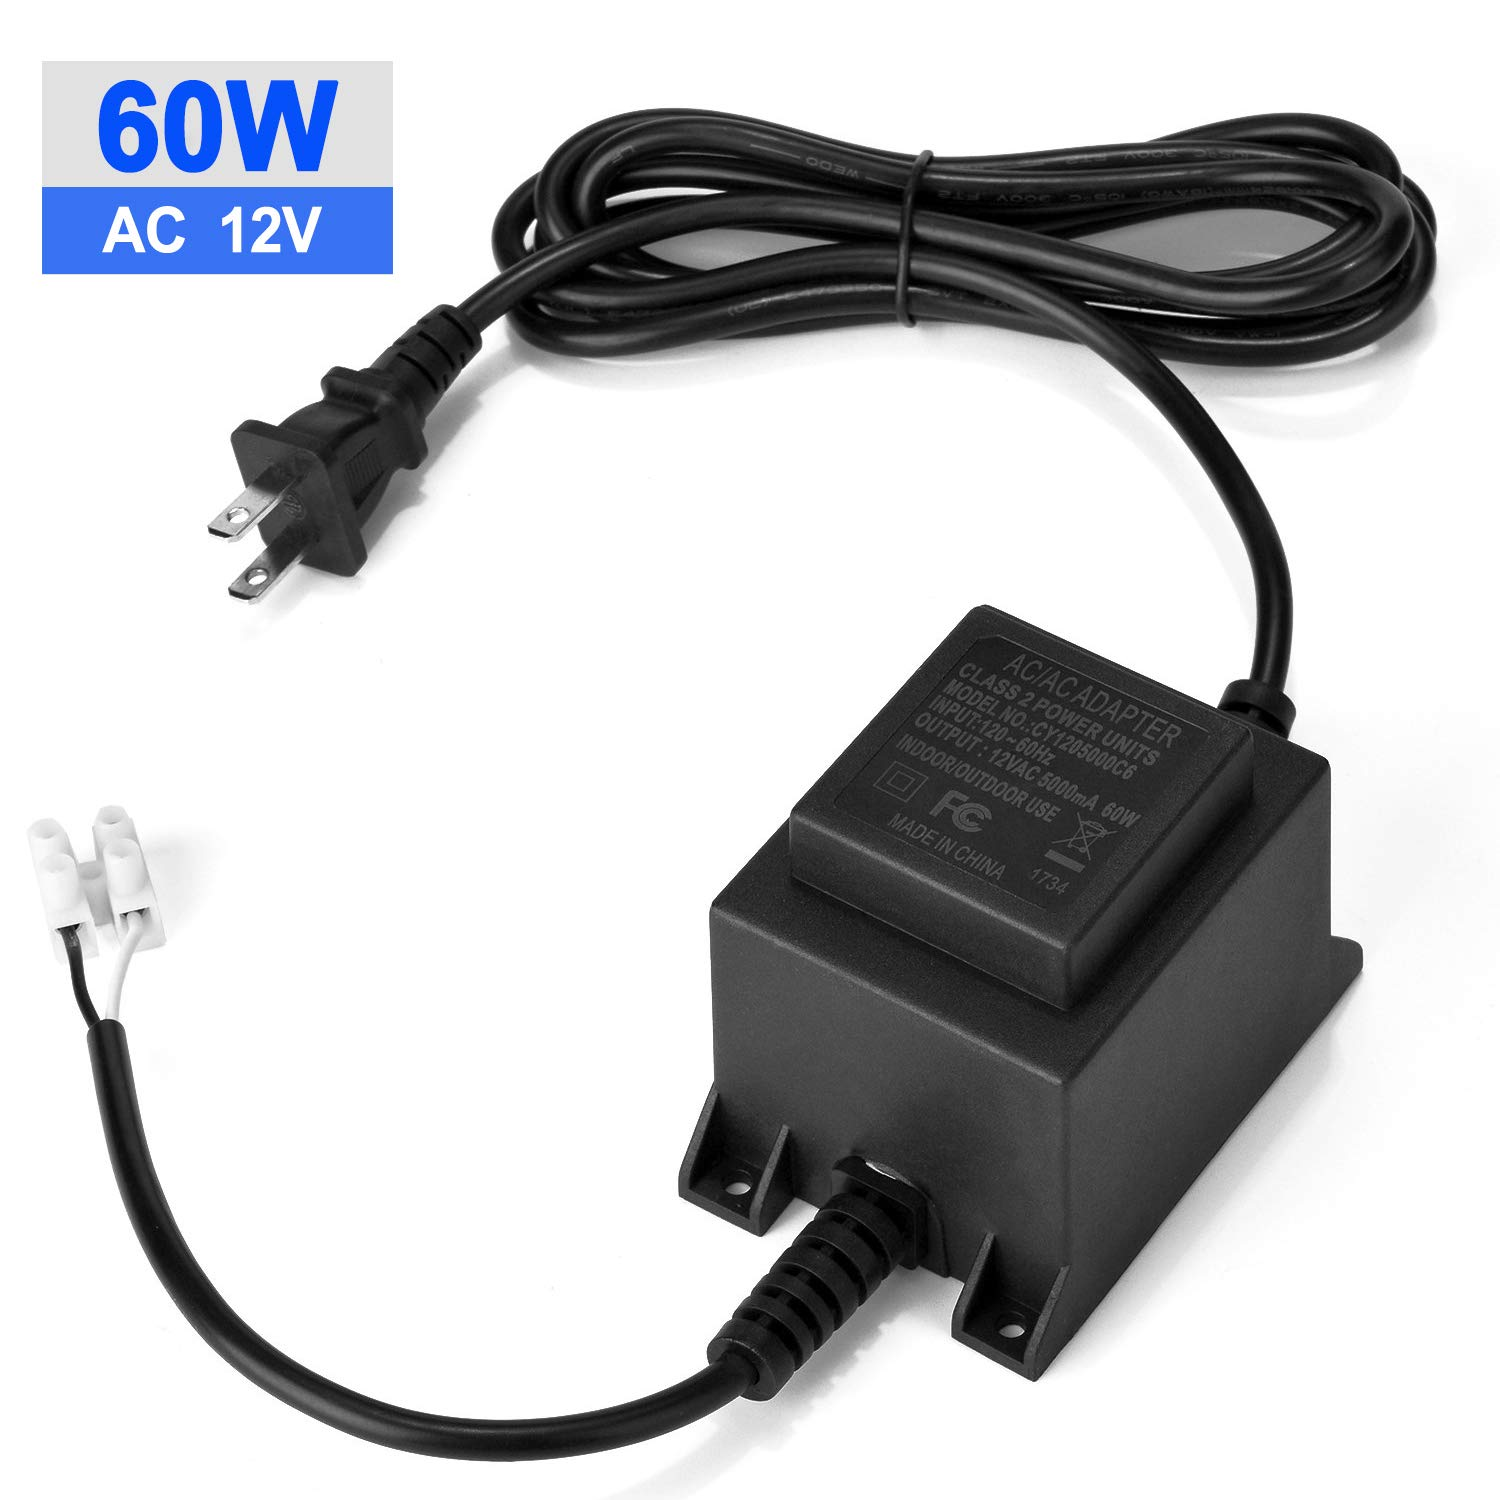 voltage converter transformer 110 120v to ac 12v 5a, agptek 60 watt waterproof power supply converter for swimming pool light, water pump, outdoor 12 Volt Plug in Transformer